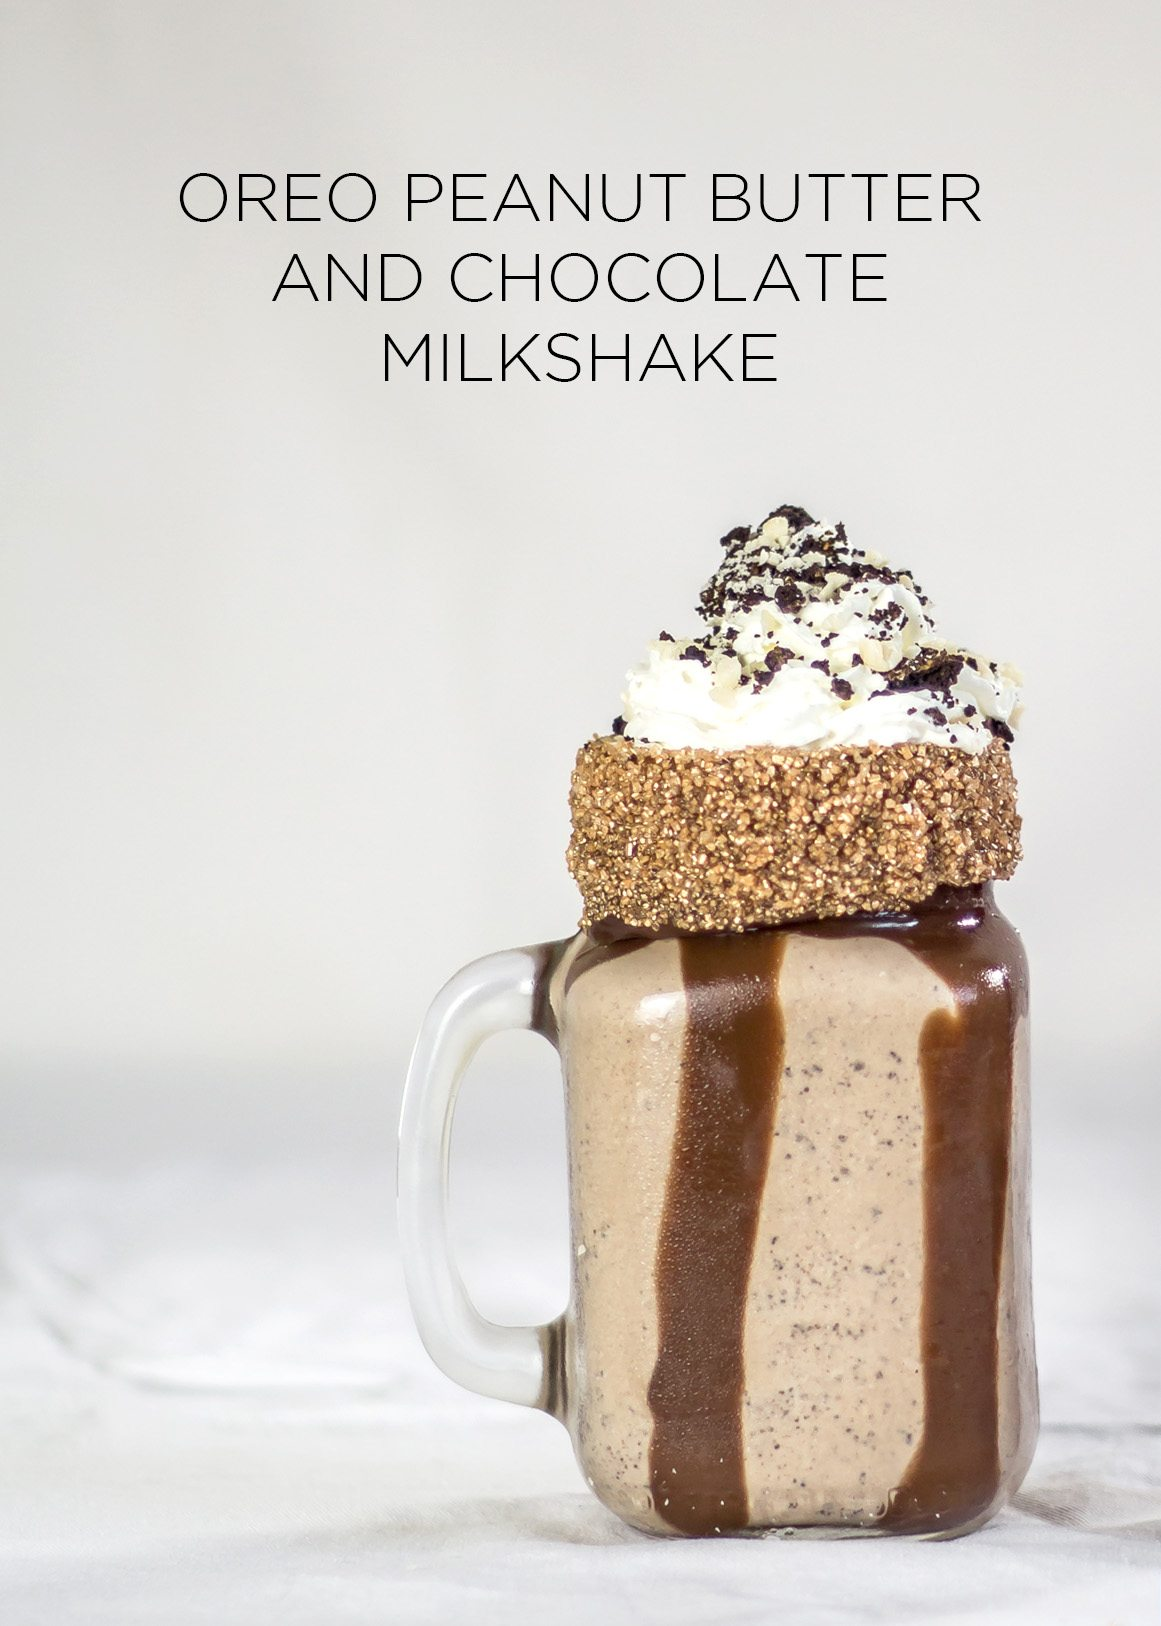 Oreo Peanut Butter and Chocolate Milkshake-11